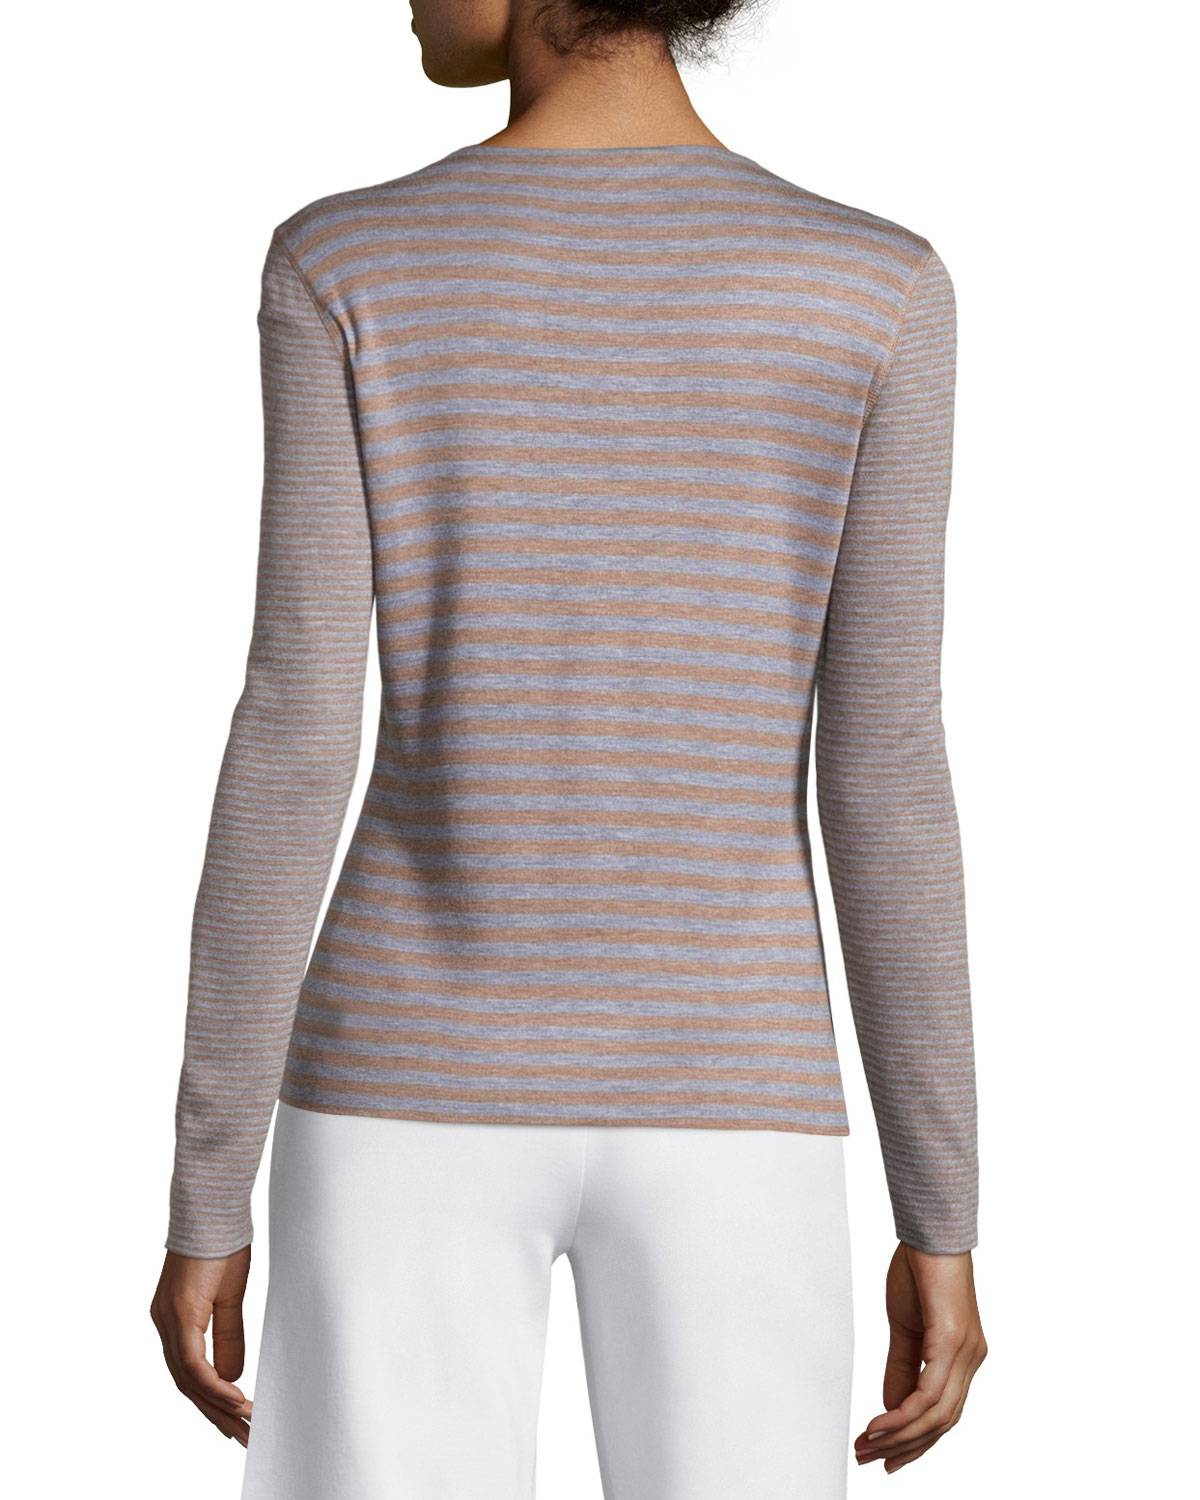 148 Best Images About Fingernail Art On Pinterest: Lafayette 148 New York Long-sleeve Striped Top In Pink